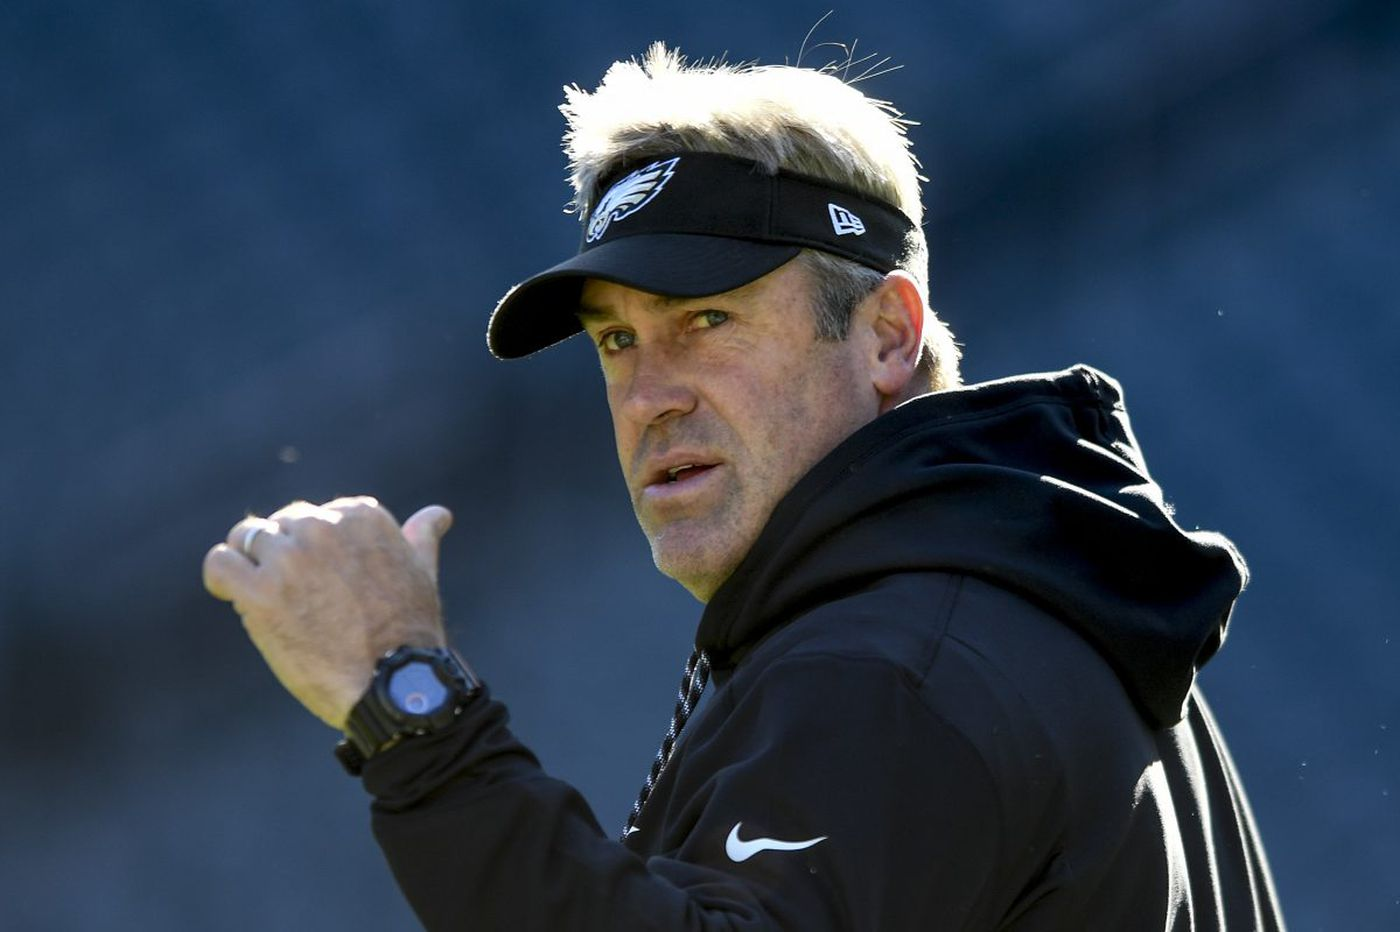 As Doug Pederson coaches in playoffs again, meet the old foe rooting for him from afar | David Murphy